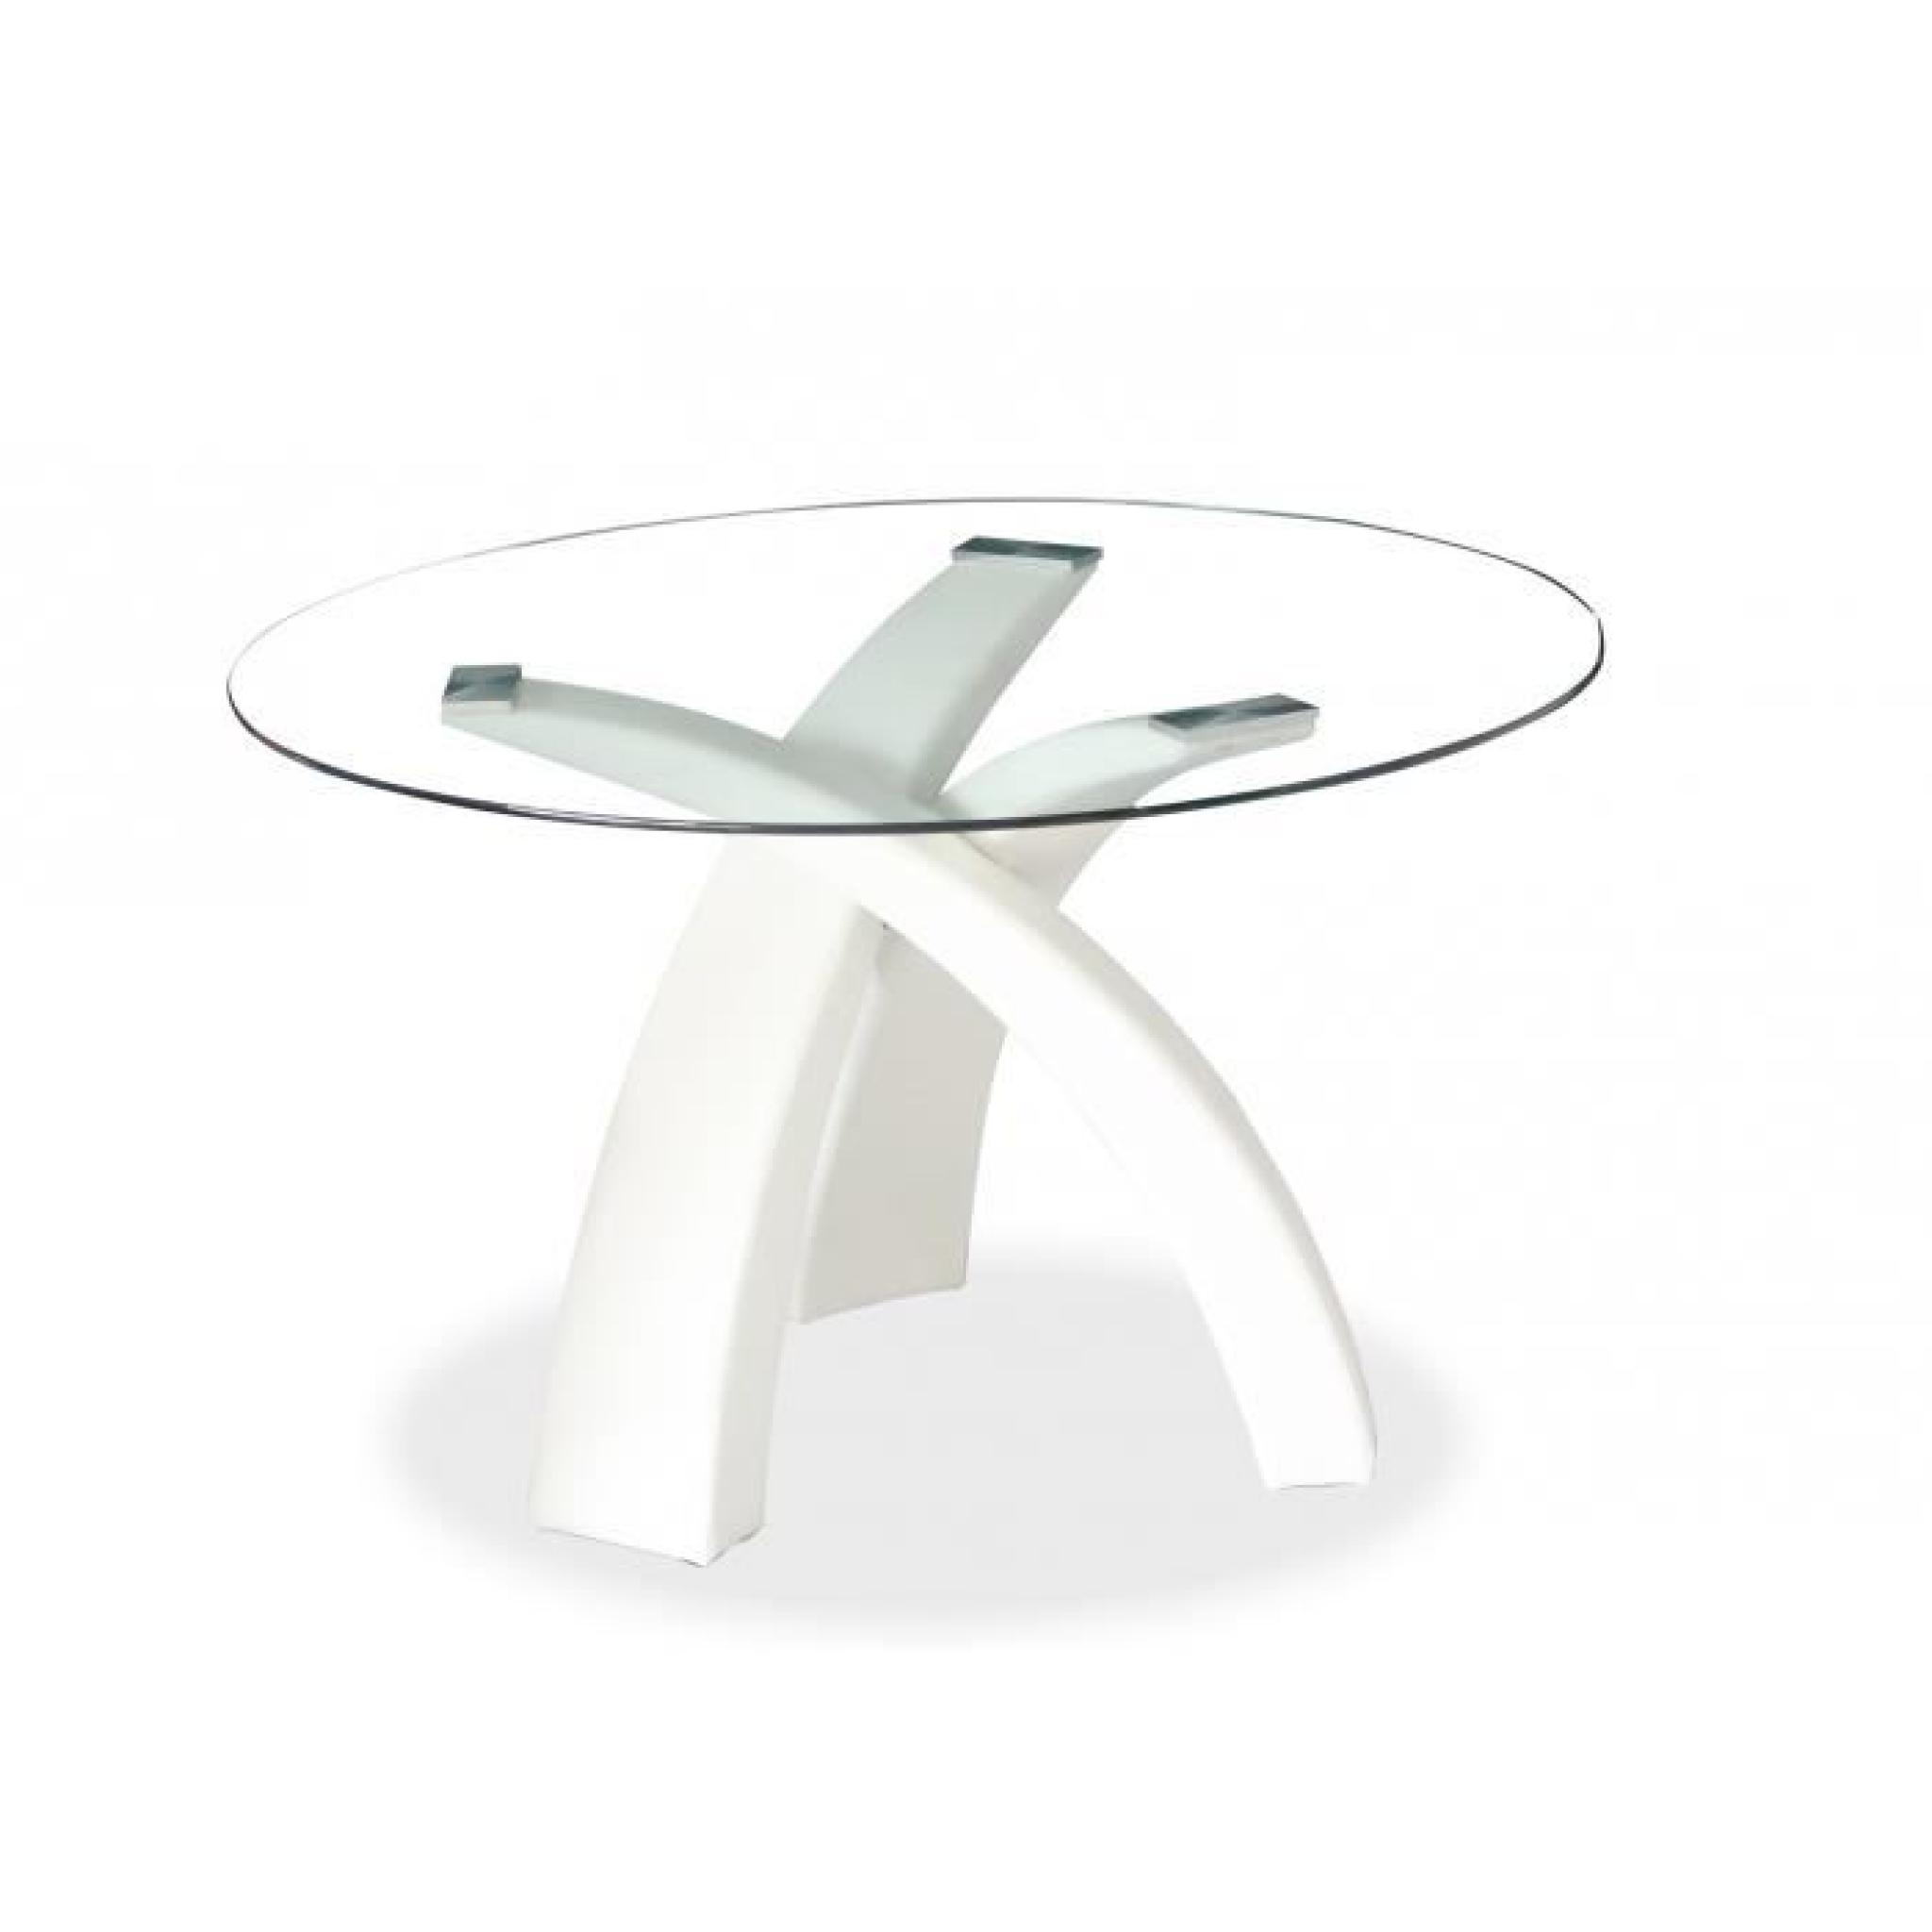 Table manger ronde blanche gore achat vente table for Table salle a manger en verre design ronde